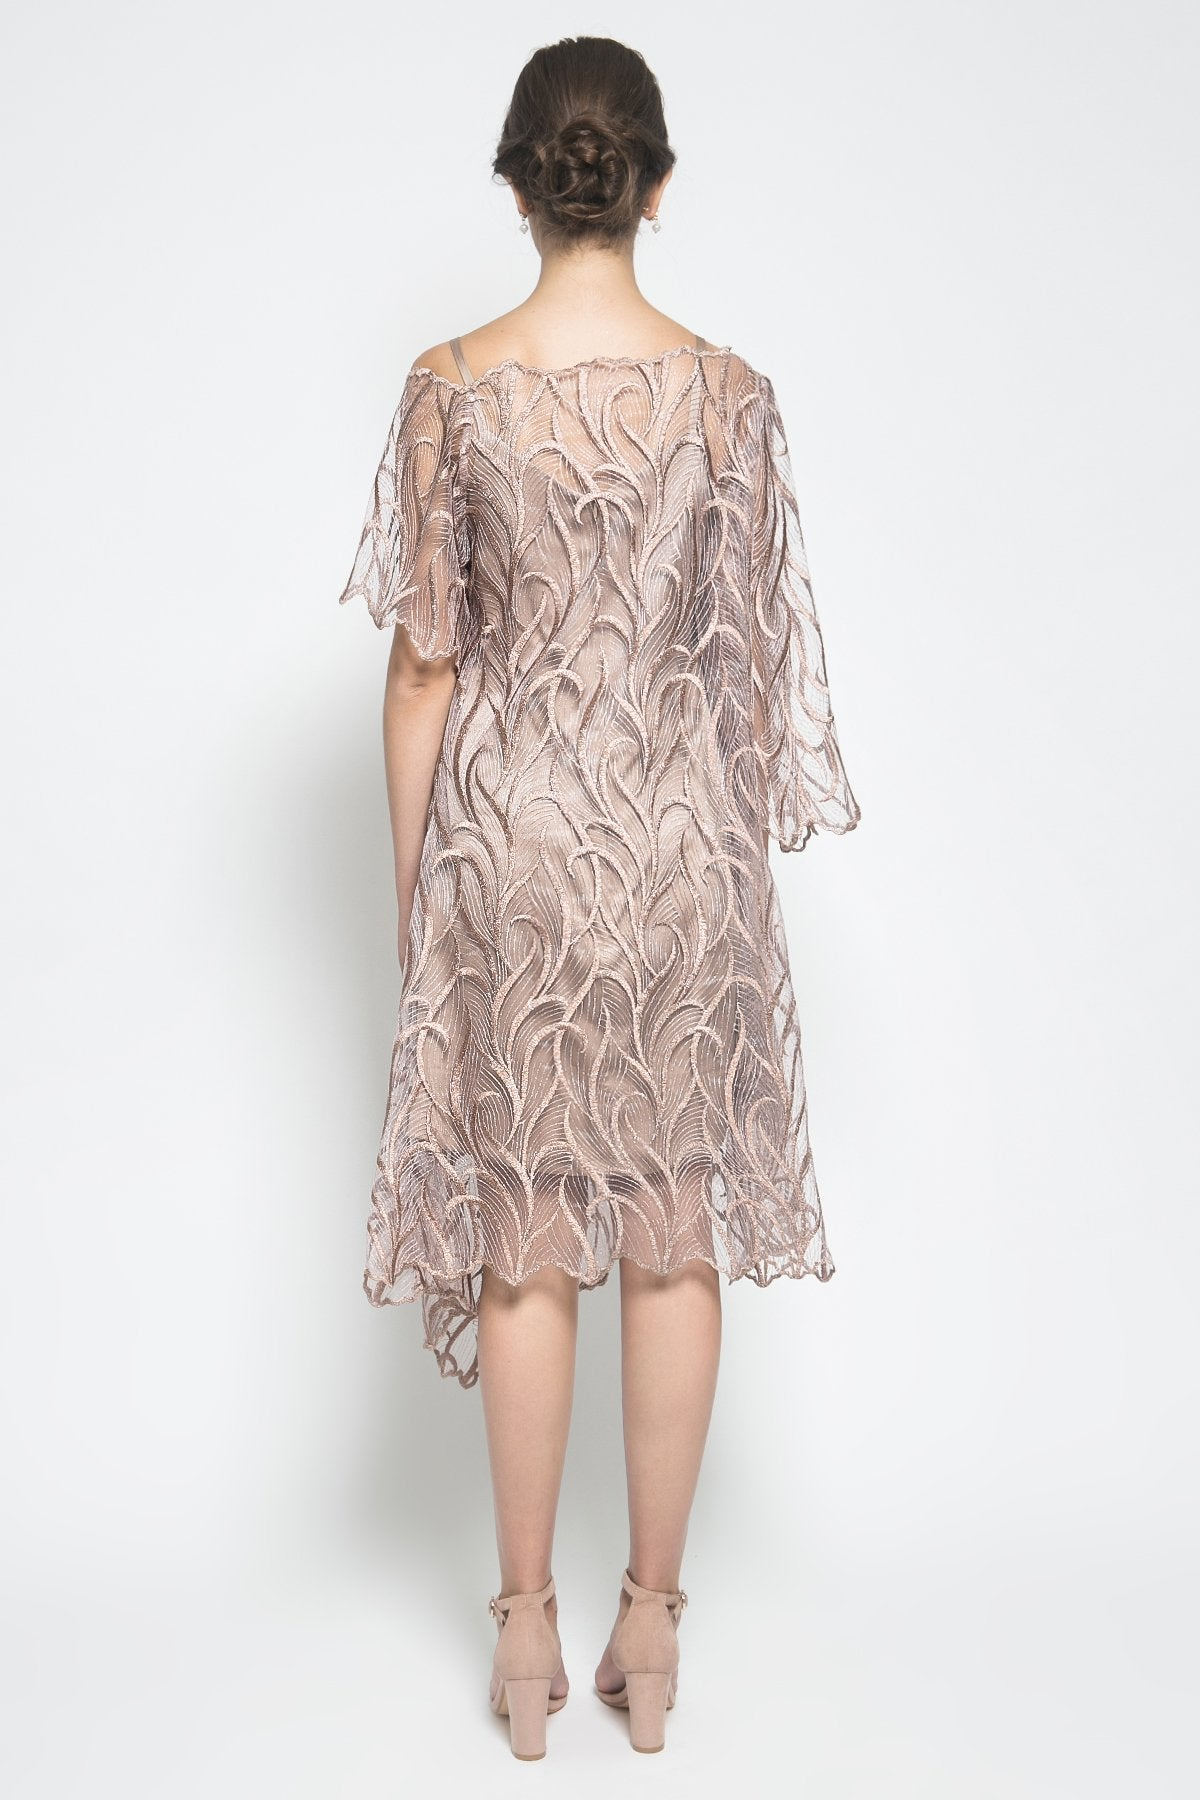 KÉNATA by Keisya Natalia Celine Dress in Rosegold